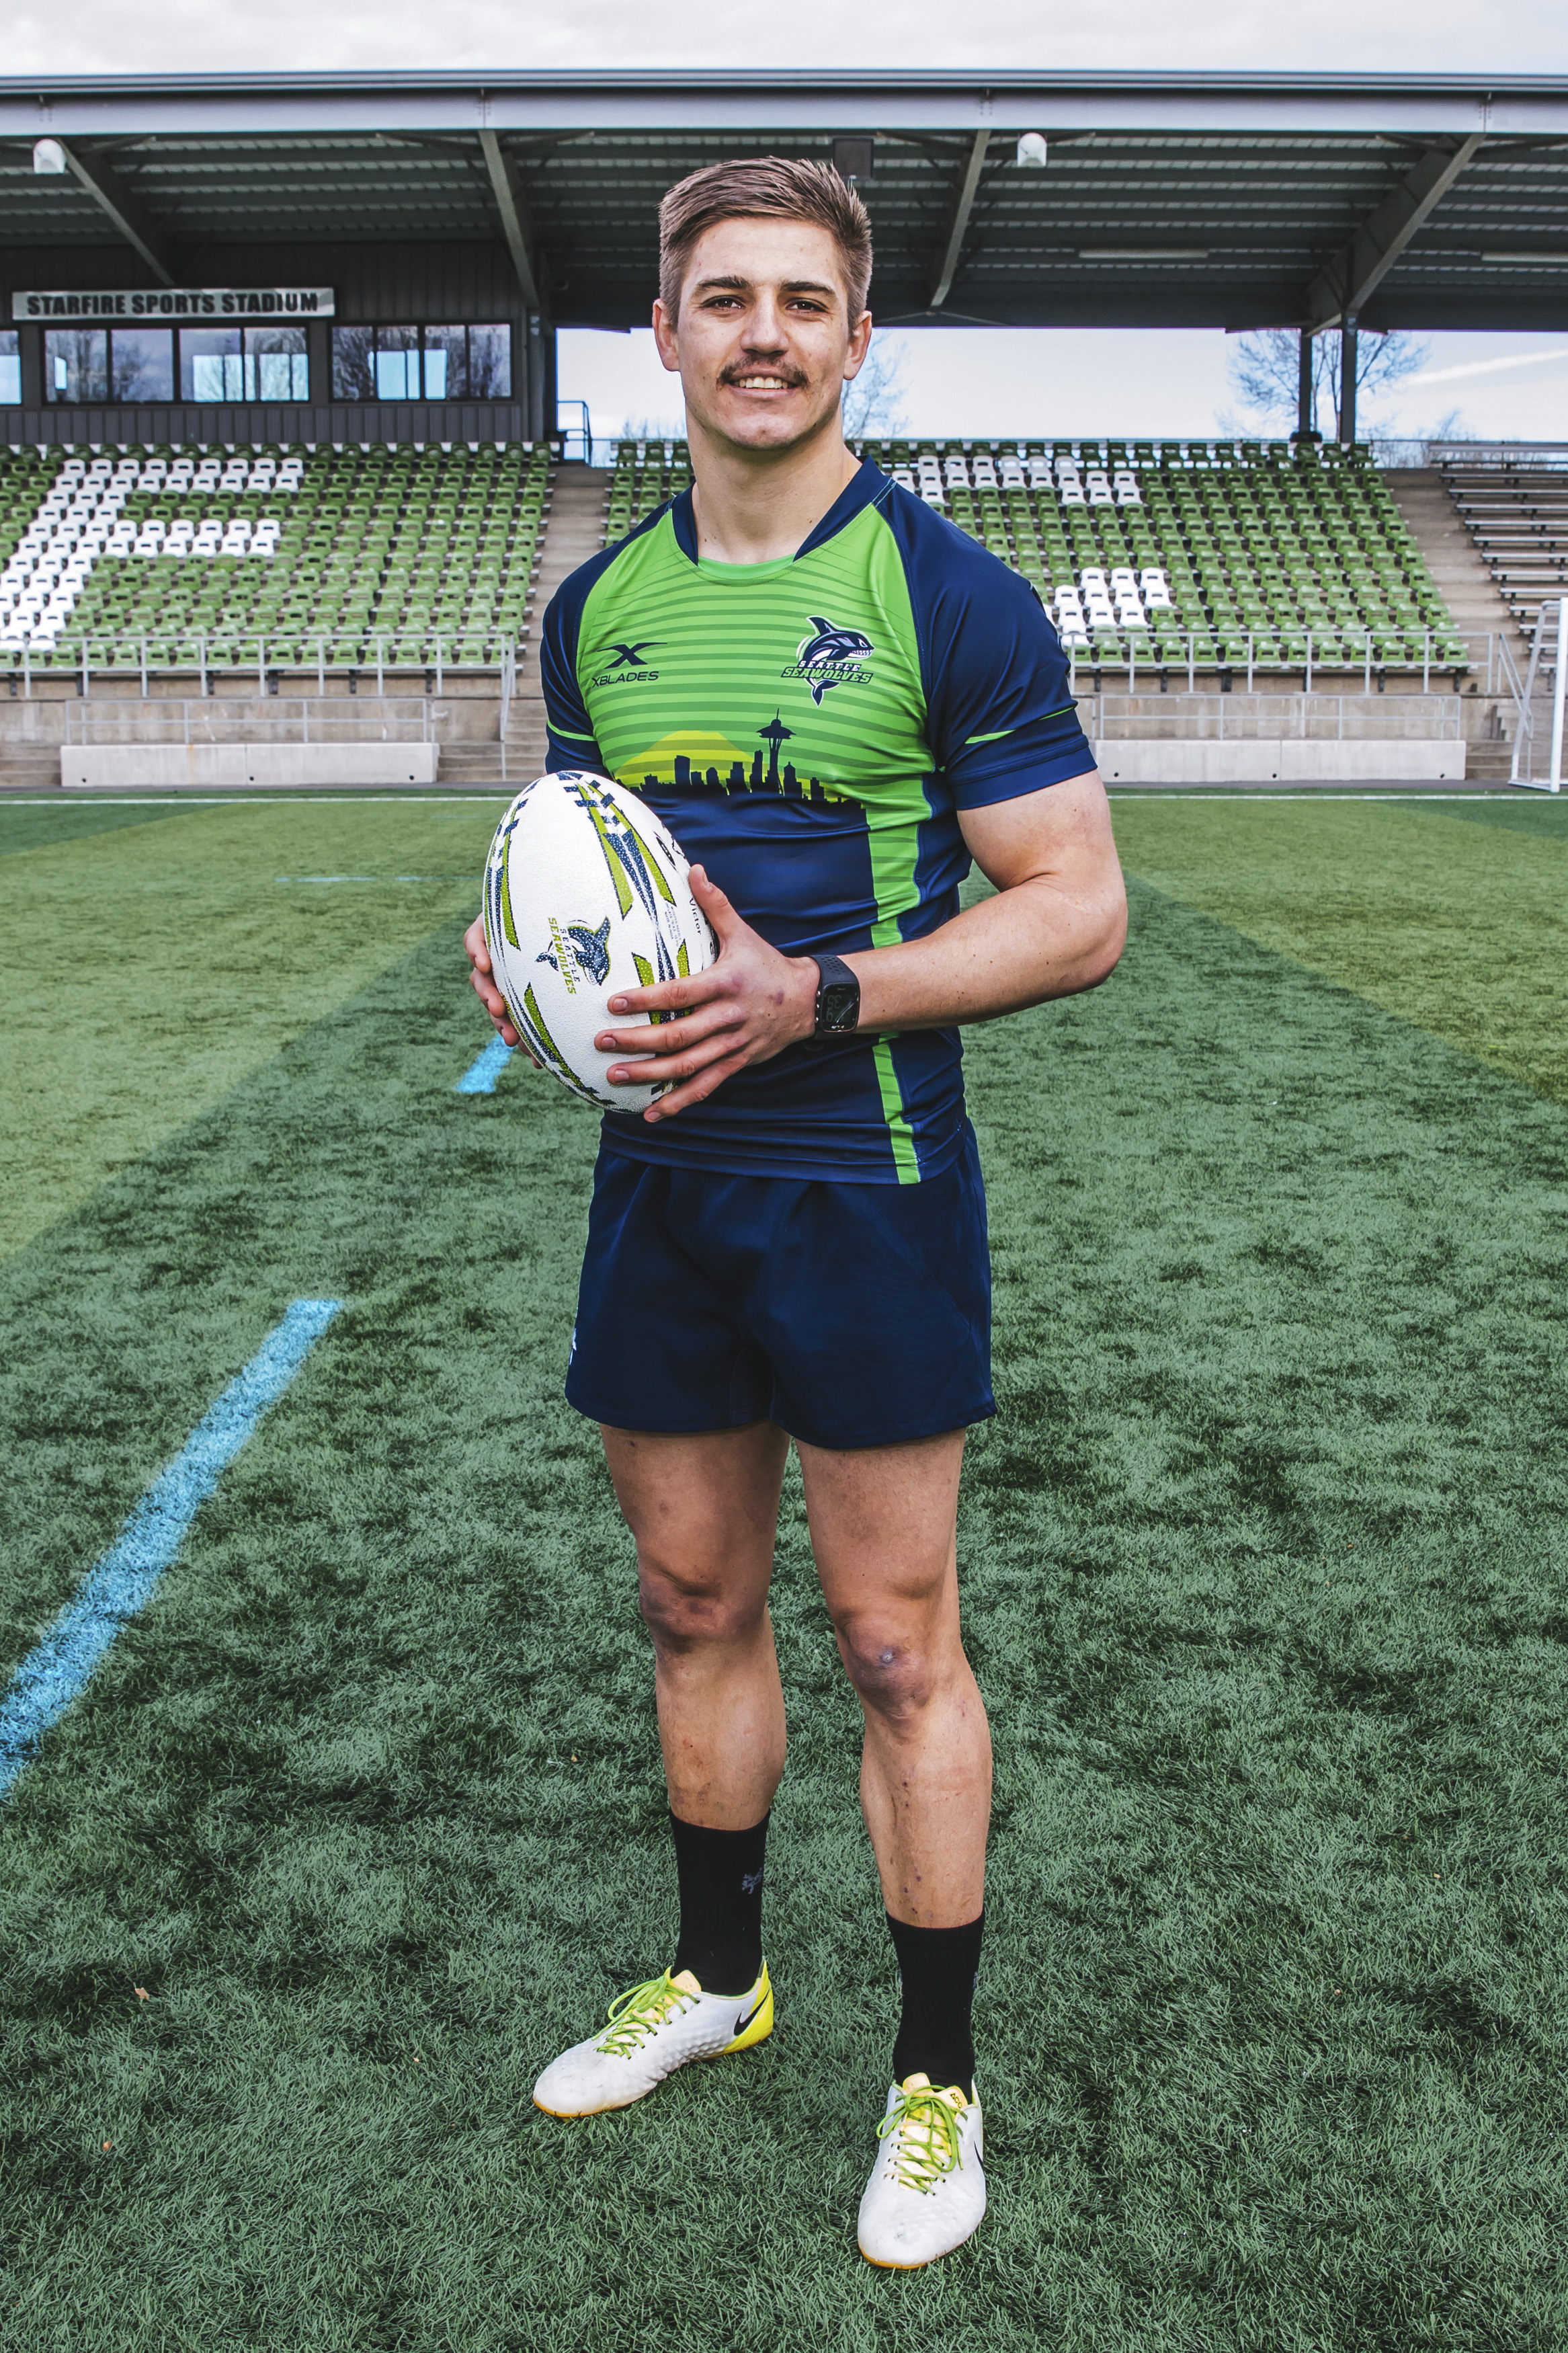 Look at that sweet face! JP is 24 and was born in Queenstown, South Africa. He plays Scrum Half for the Seawolves and his favorite food is steak, favorite TV show is Fringe and he's got a big ole celebrity crush on Julianne Hough! (Image: Sunita Martini / Seattle Refined).